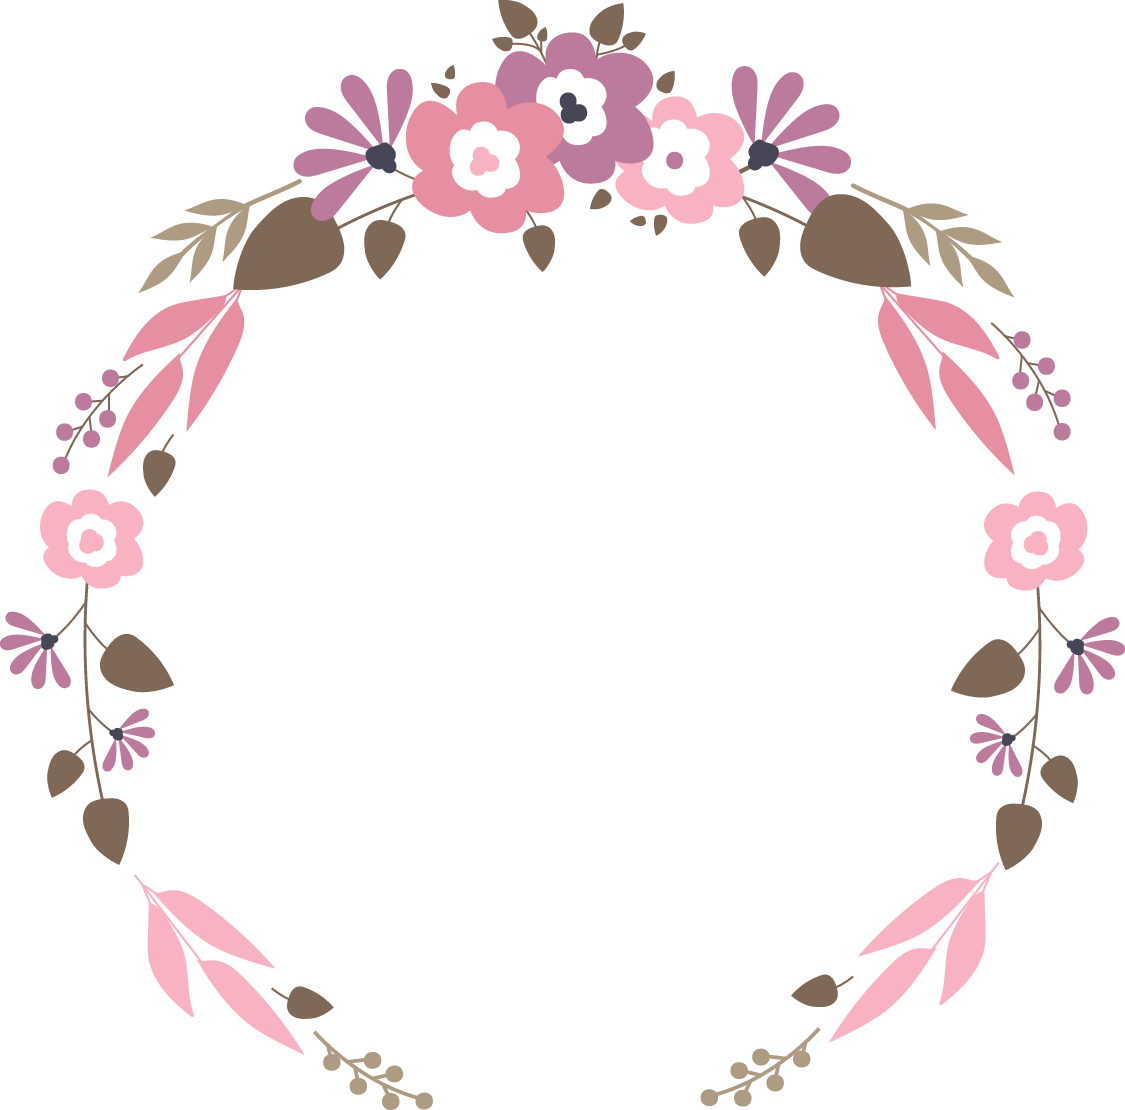 Flower png vector. Floral garland wedding flat